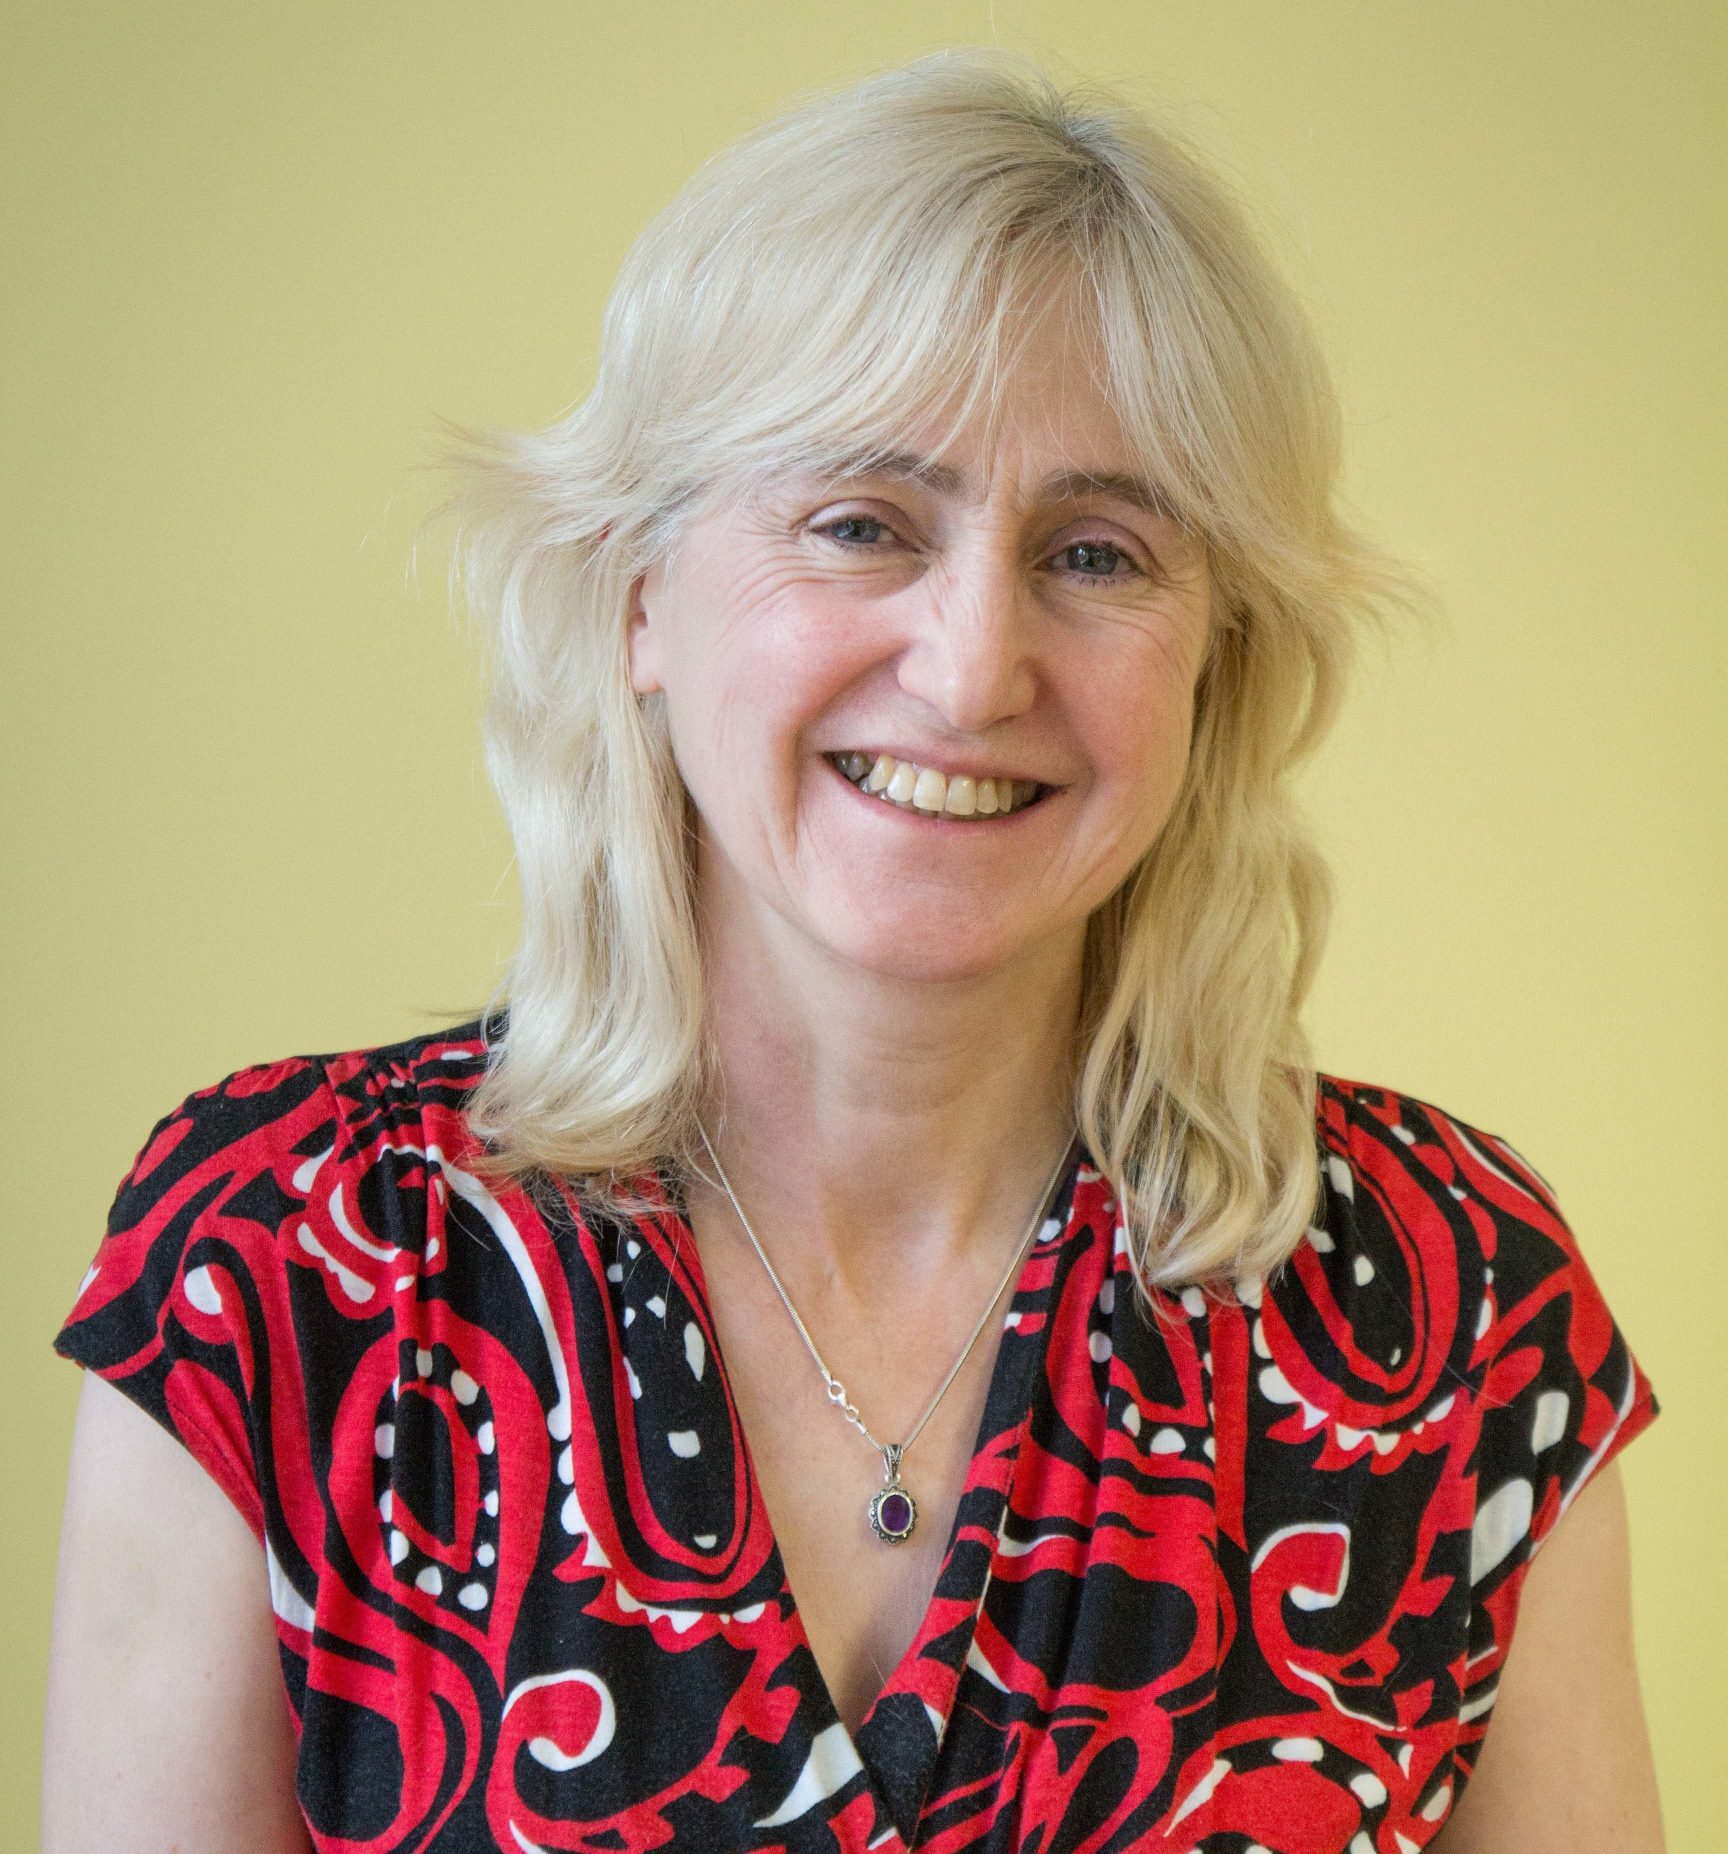 In her blog this week Creative Support's CEO, Anna Lunts, congratulates staff award winners